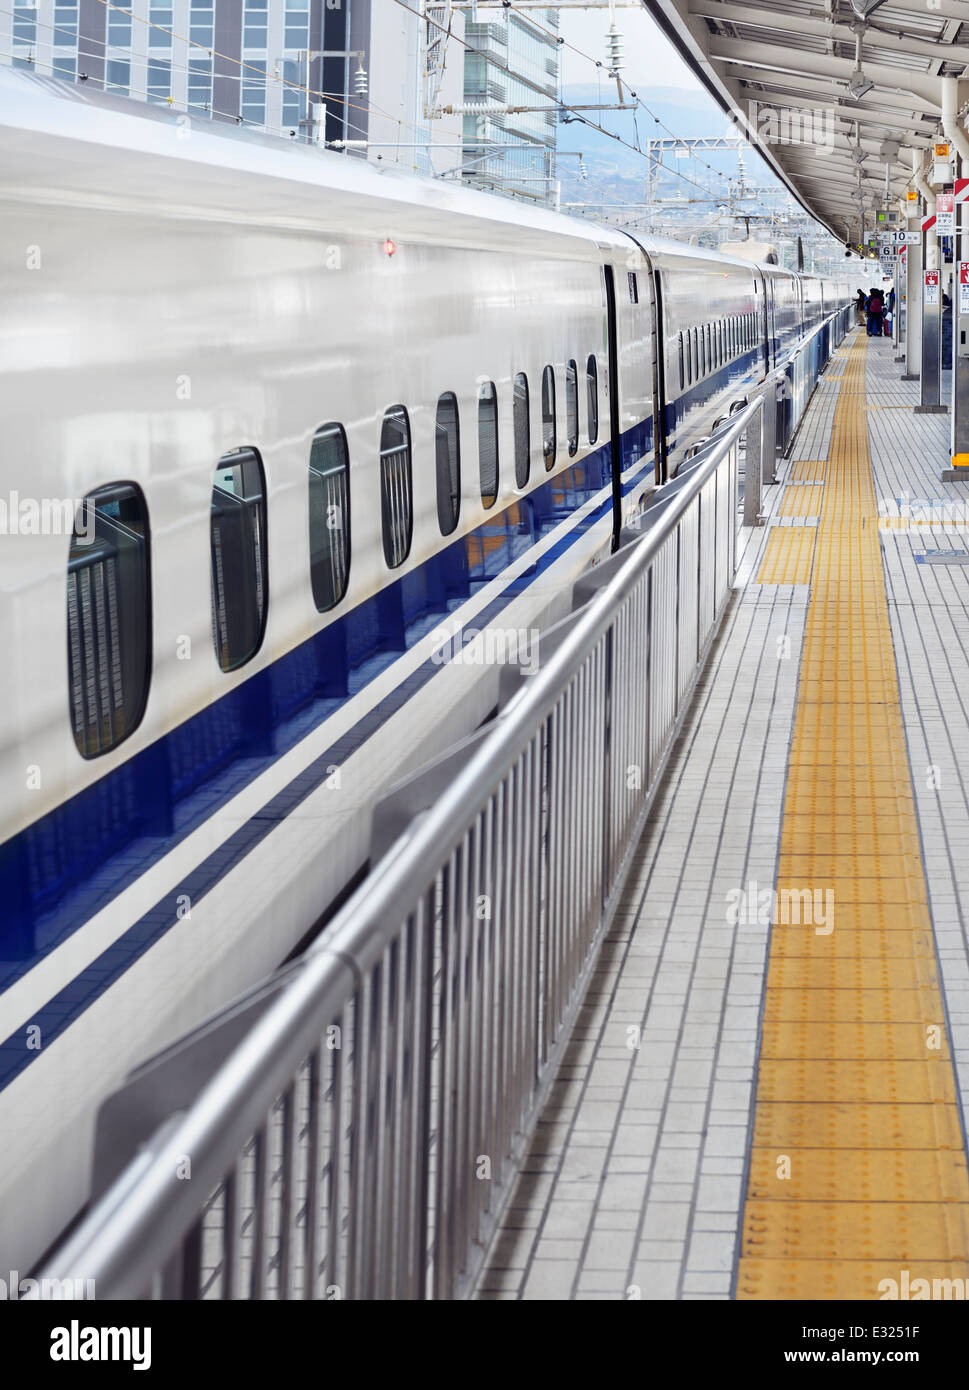 Shinkansen bullet train at a platform in Shizuoka, Japan - Stock Image